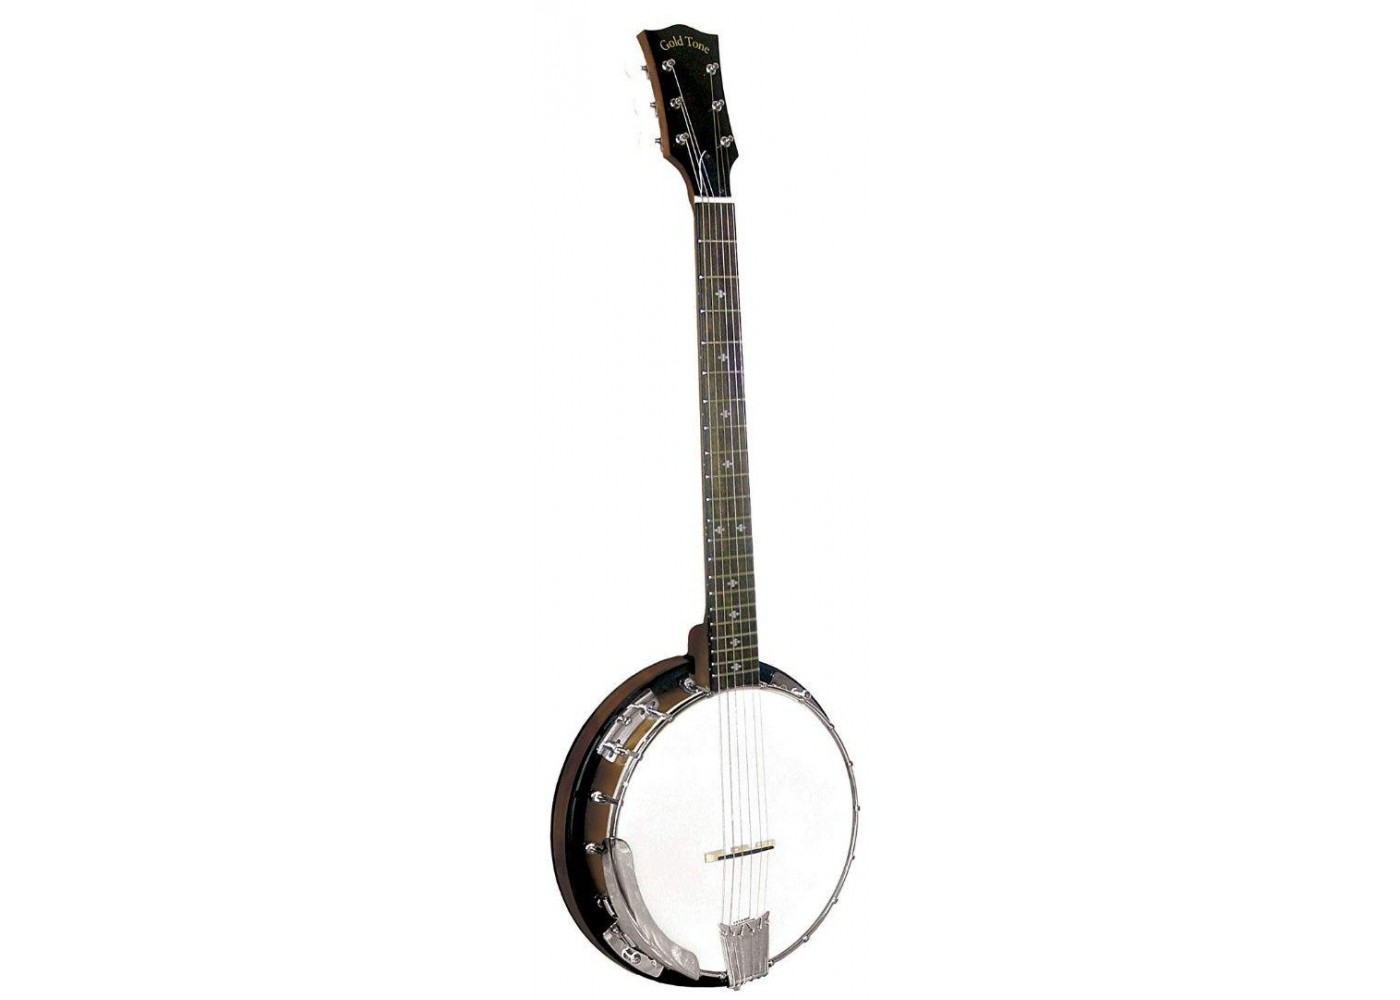 Gold Tone Cc Banjitar Cripple Creek Banjo Six String